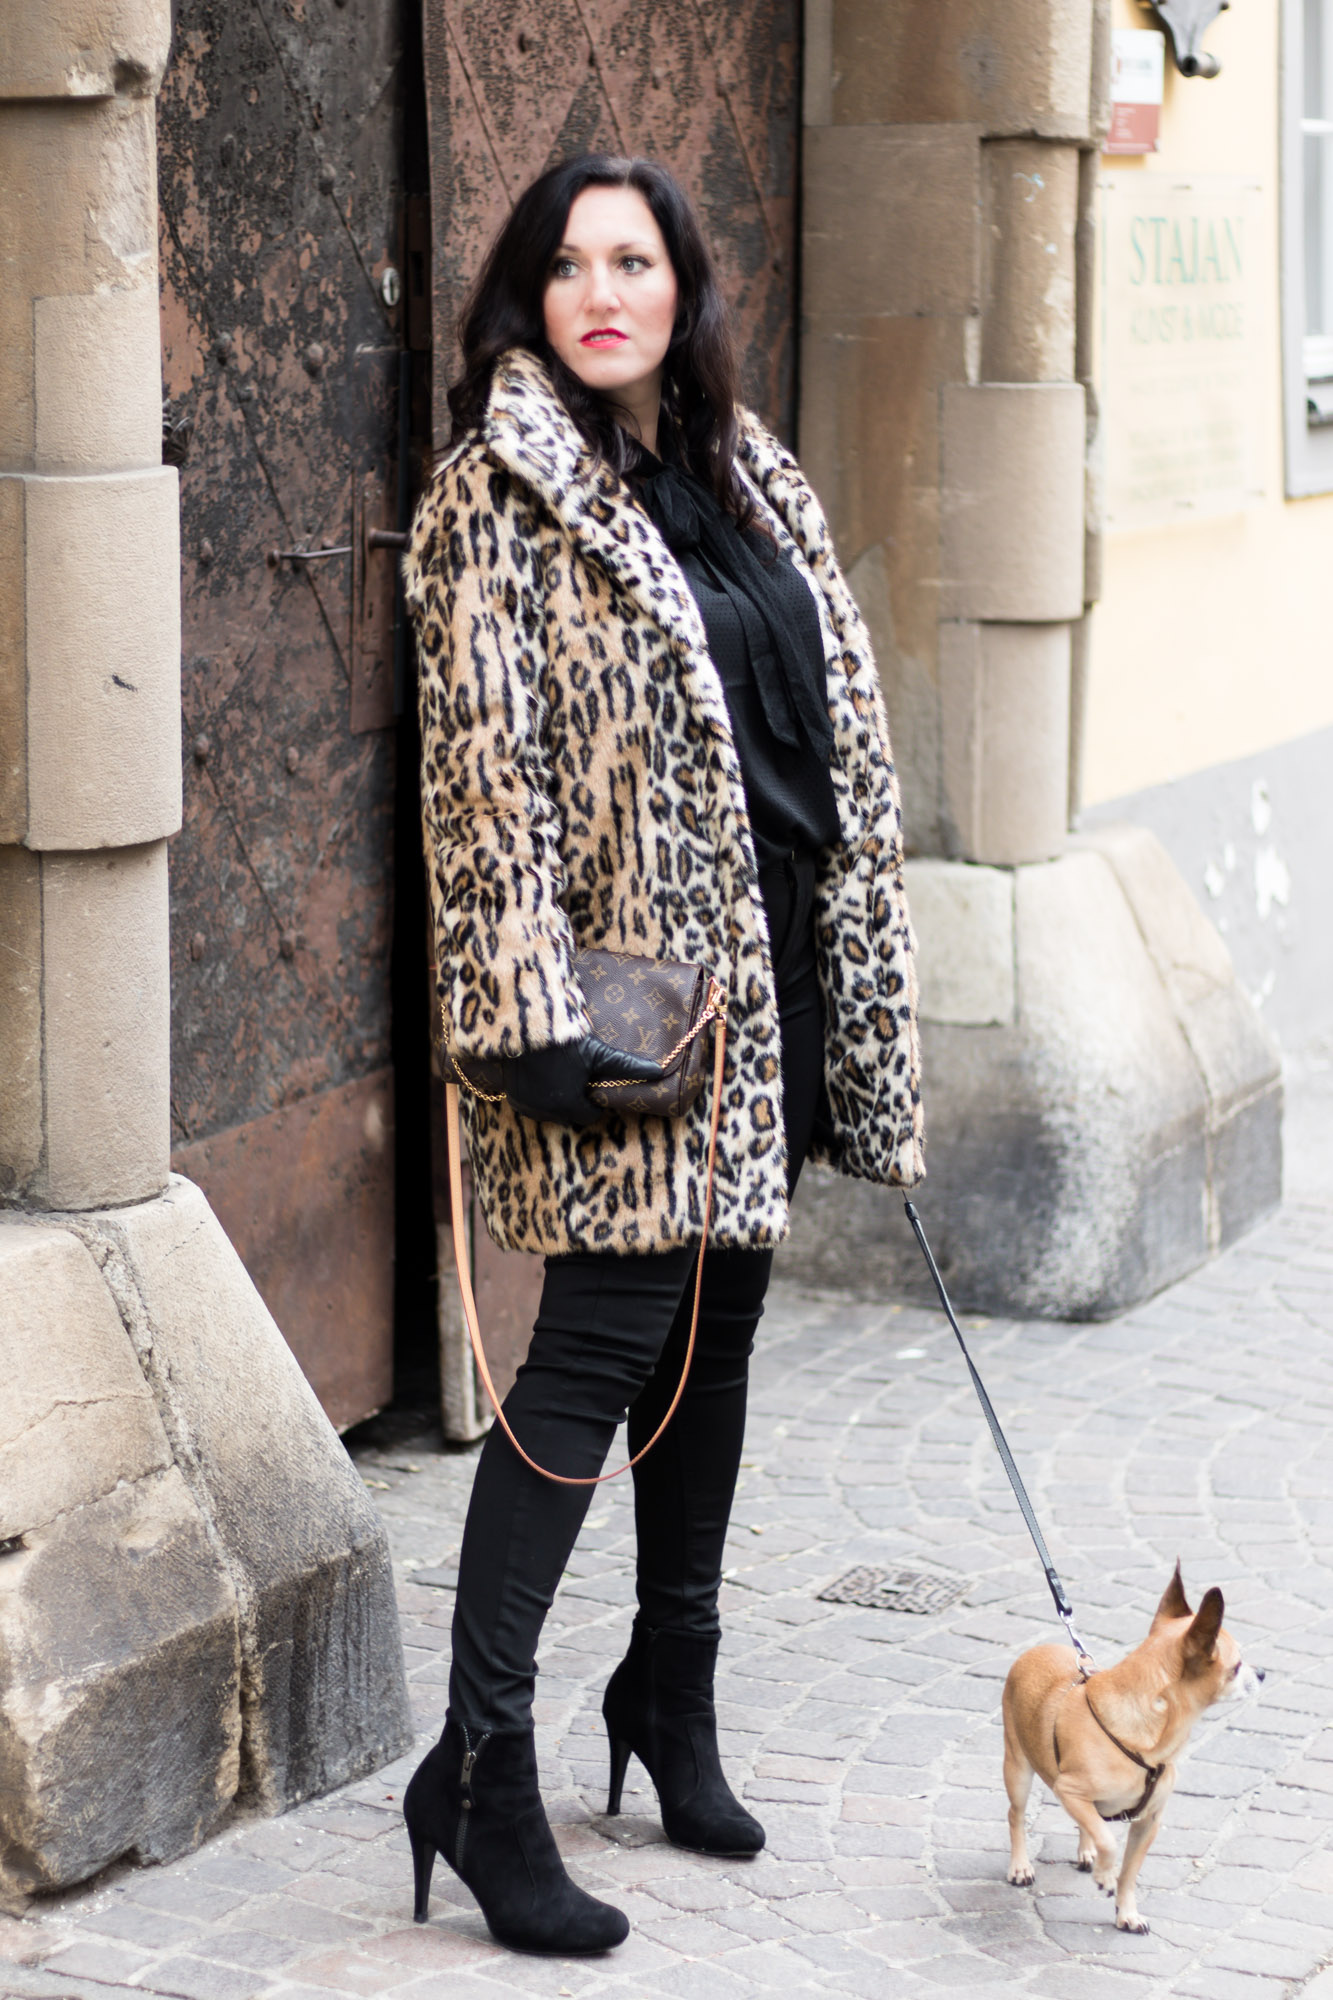 OUTFIT Fake Fur Mantel mit Leopardenmuster und schwarzer Skinny Jeans, Miss Classy, Grazer Fashion Blog, Lifestyle Blog, Bloggerin Graz, classy Fashion, Faux Fur Mantel, Leopardenprint, Fake Fur, Chihuahua, Hund, Lederhandschuhe, Favorite Clutch von Louis Vuitton, schwarze Bluse, Stiefeletten